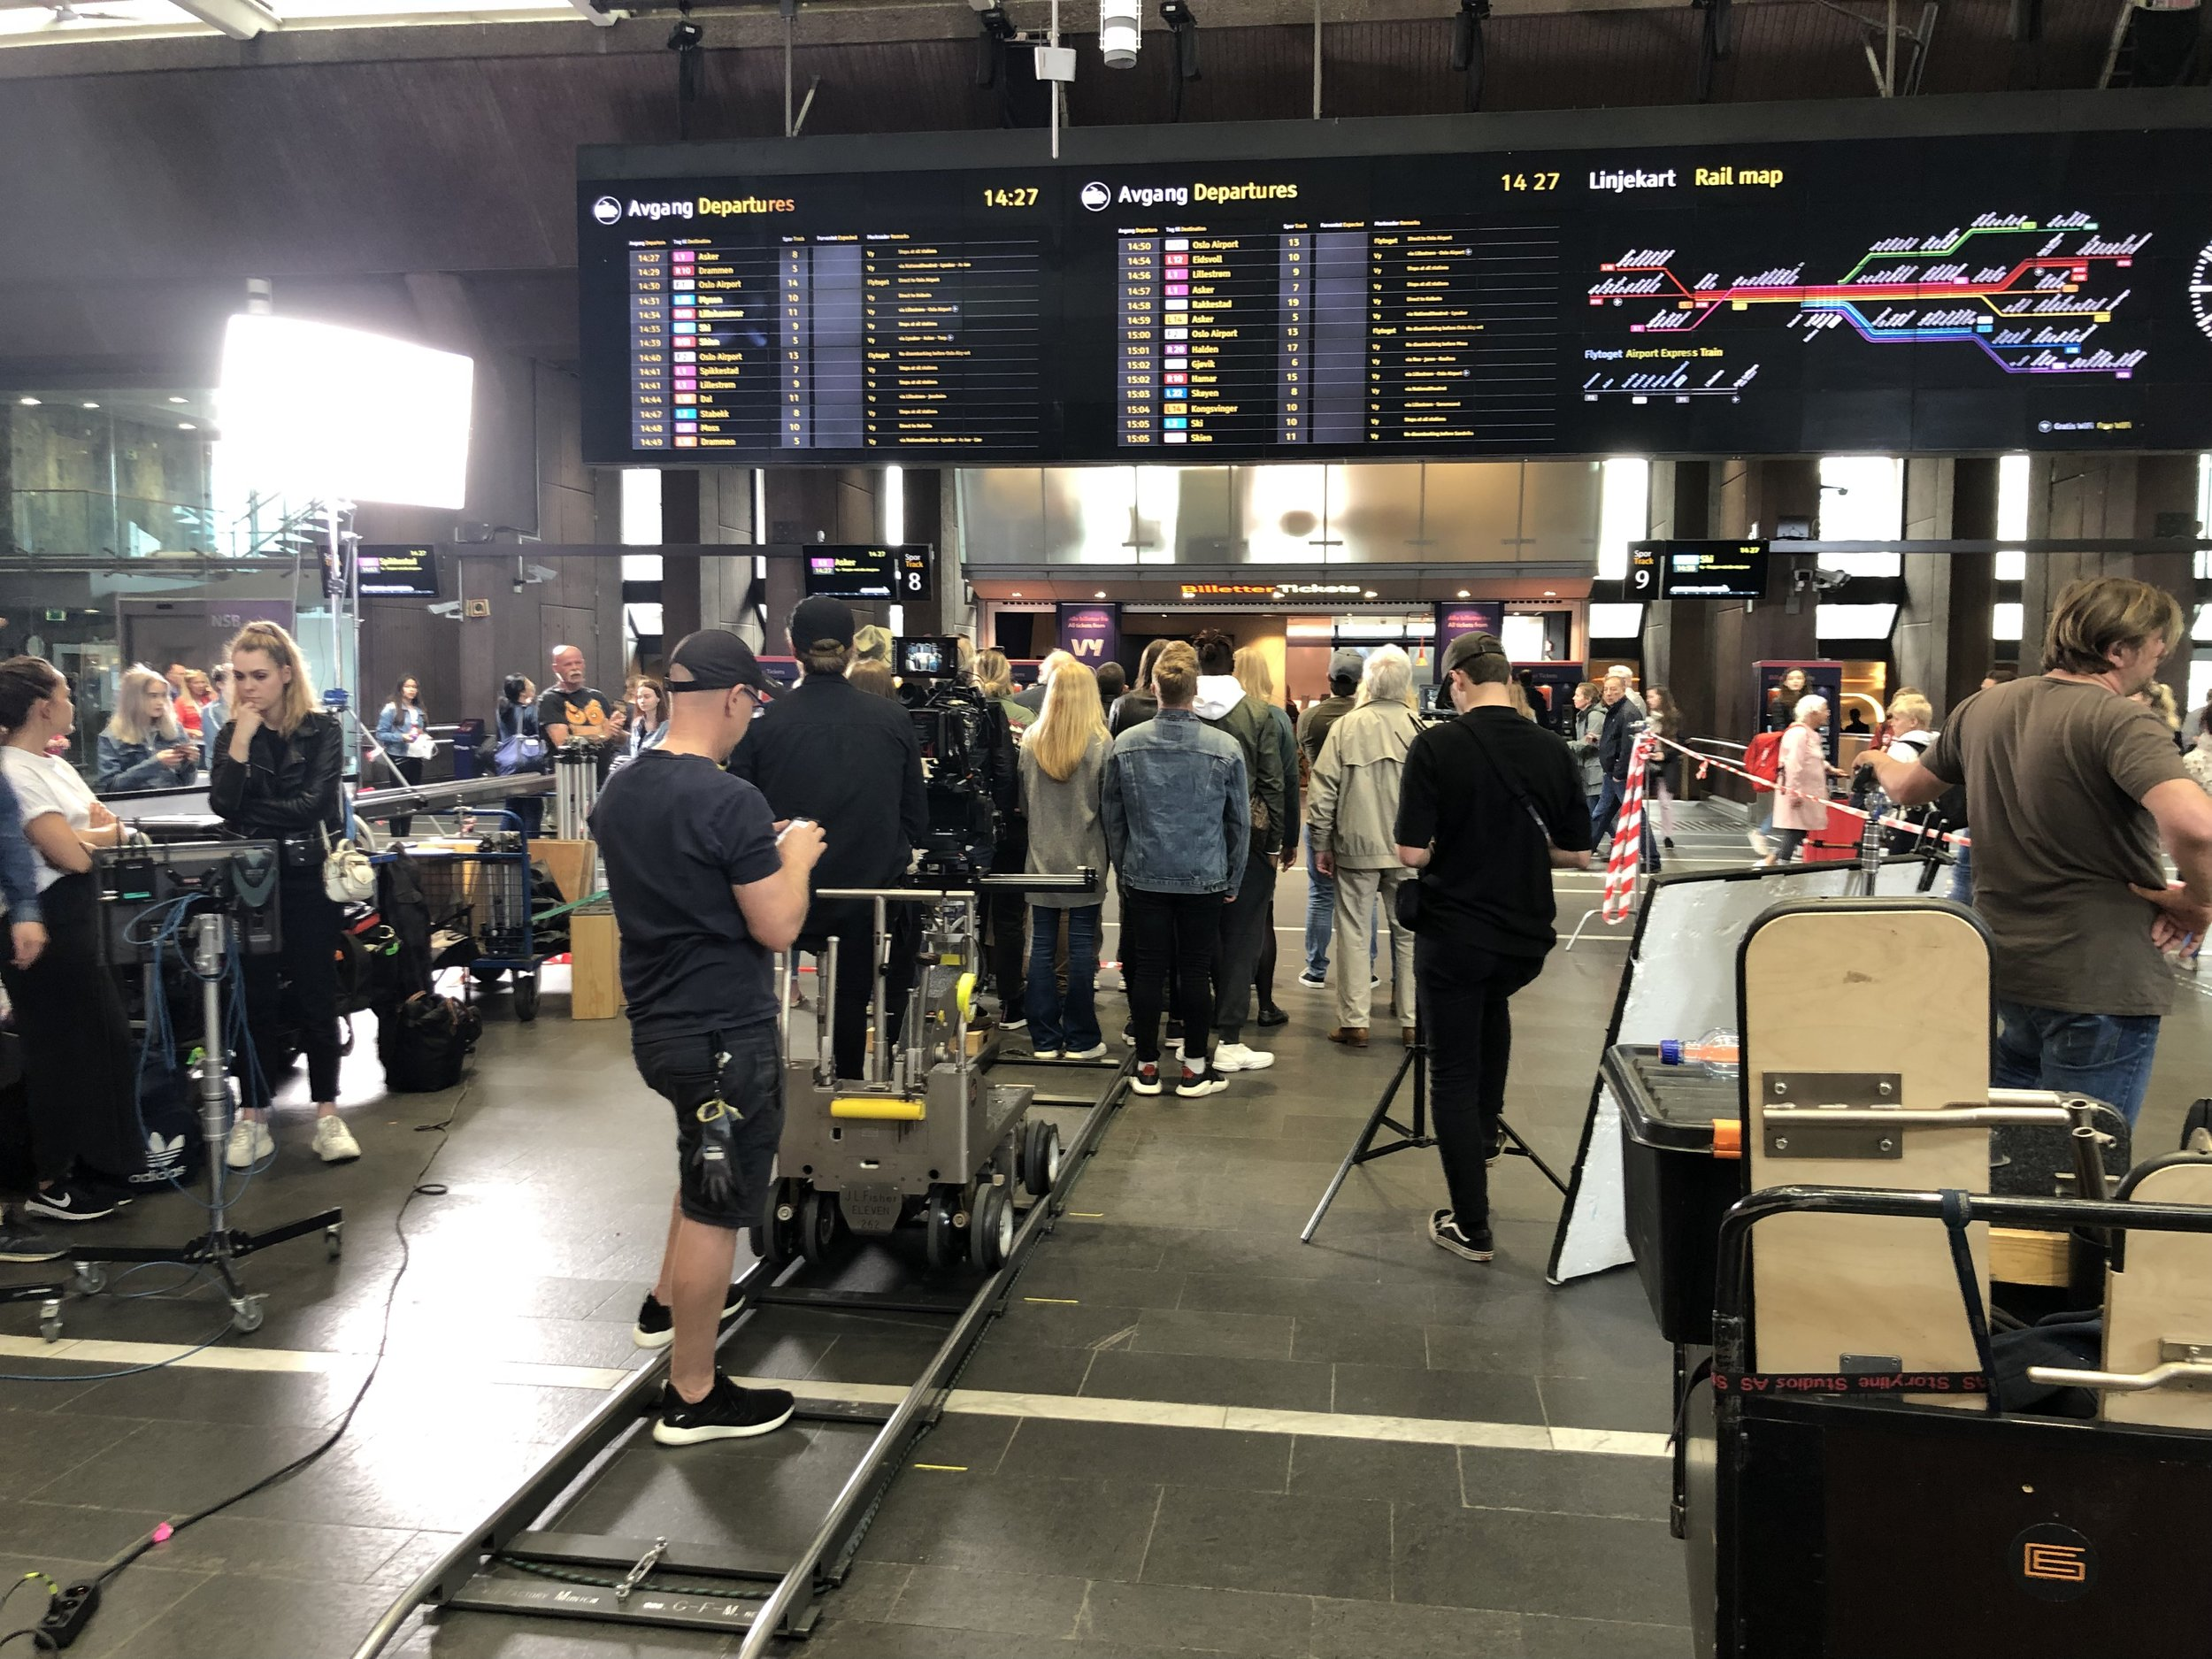 Upon our arrival at the Oslo Central Train Station, we were greeted by a crew filming a scene for a movie. They were trying to capture a crowd of people looking up at the monitors listing the scheduled train arrivals/departures. I was not asked to be in the movie, bummer.